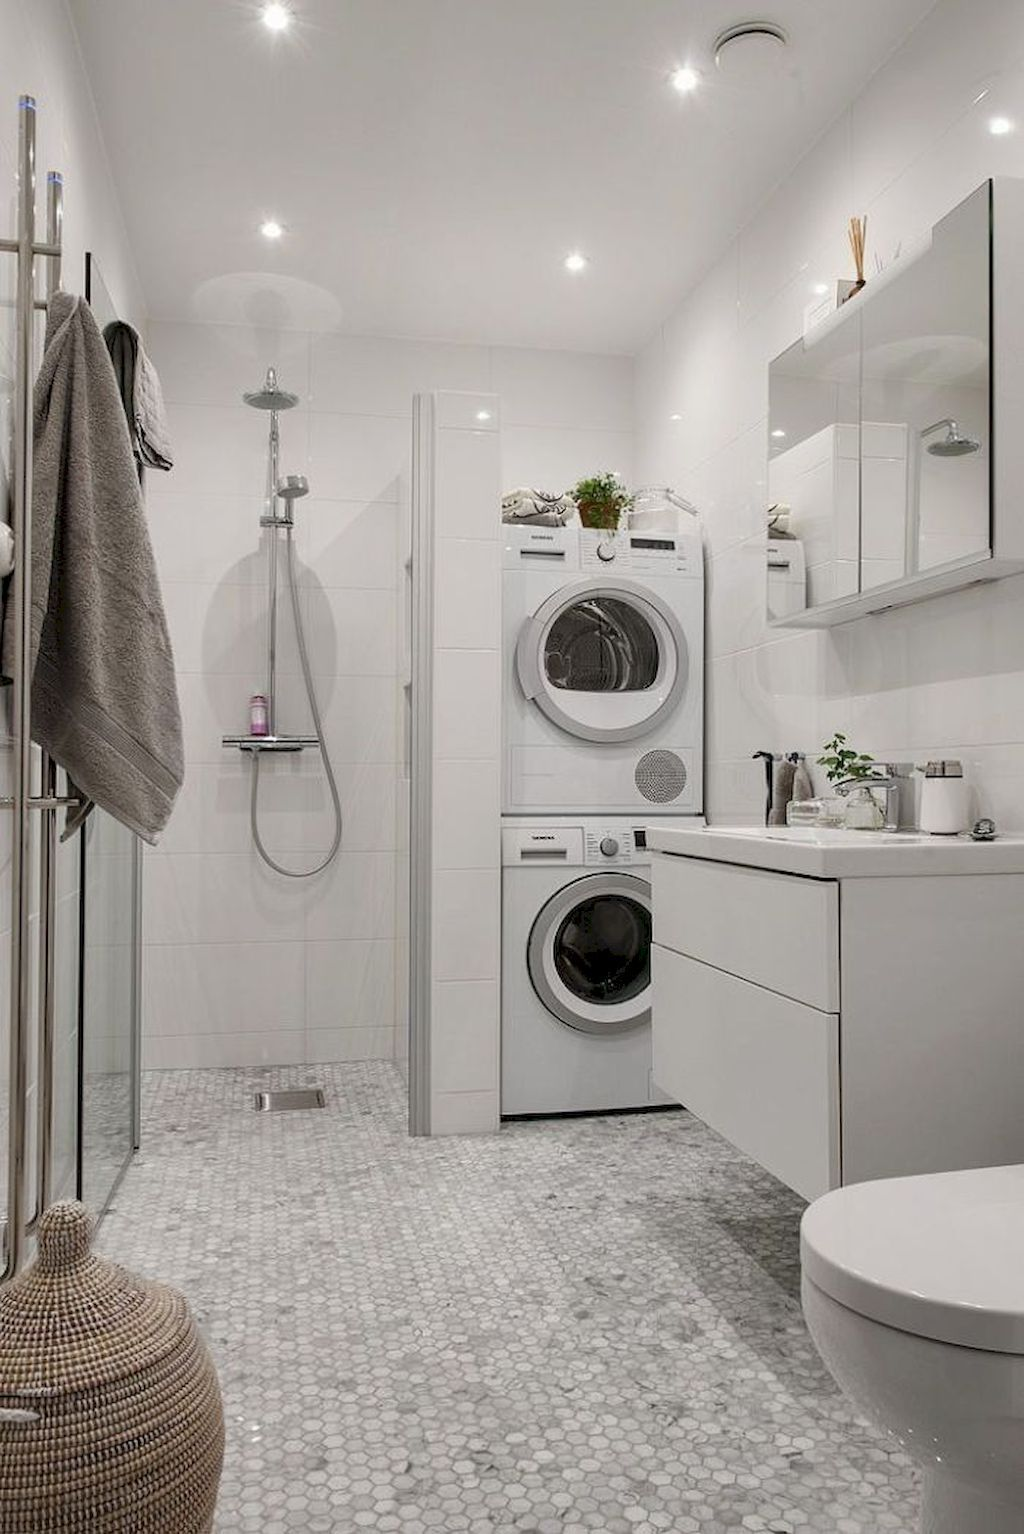 10 Bathroom Trash Can Ideas 2020 Clean And Healthy In 2020